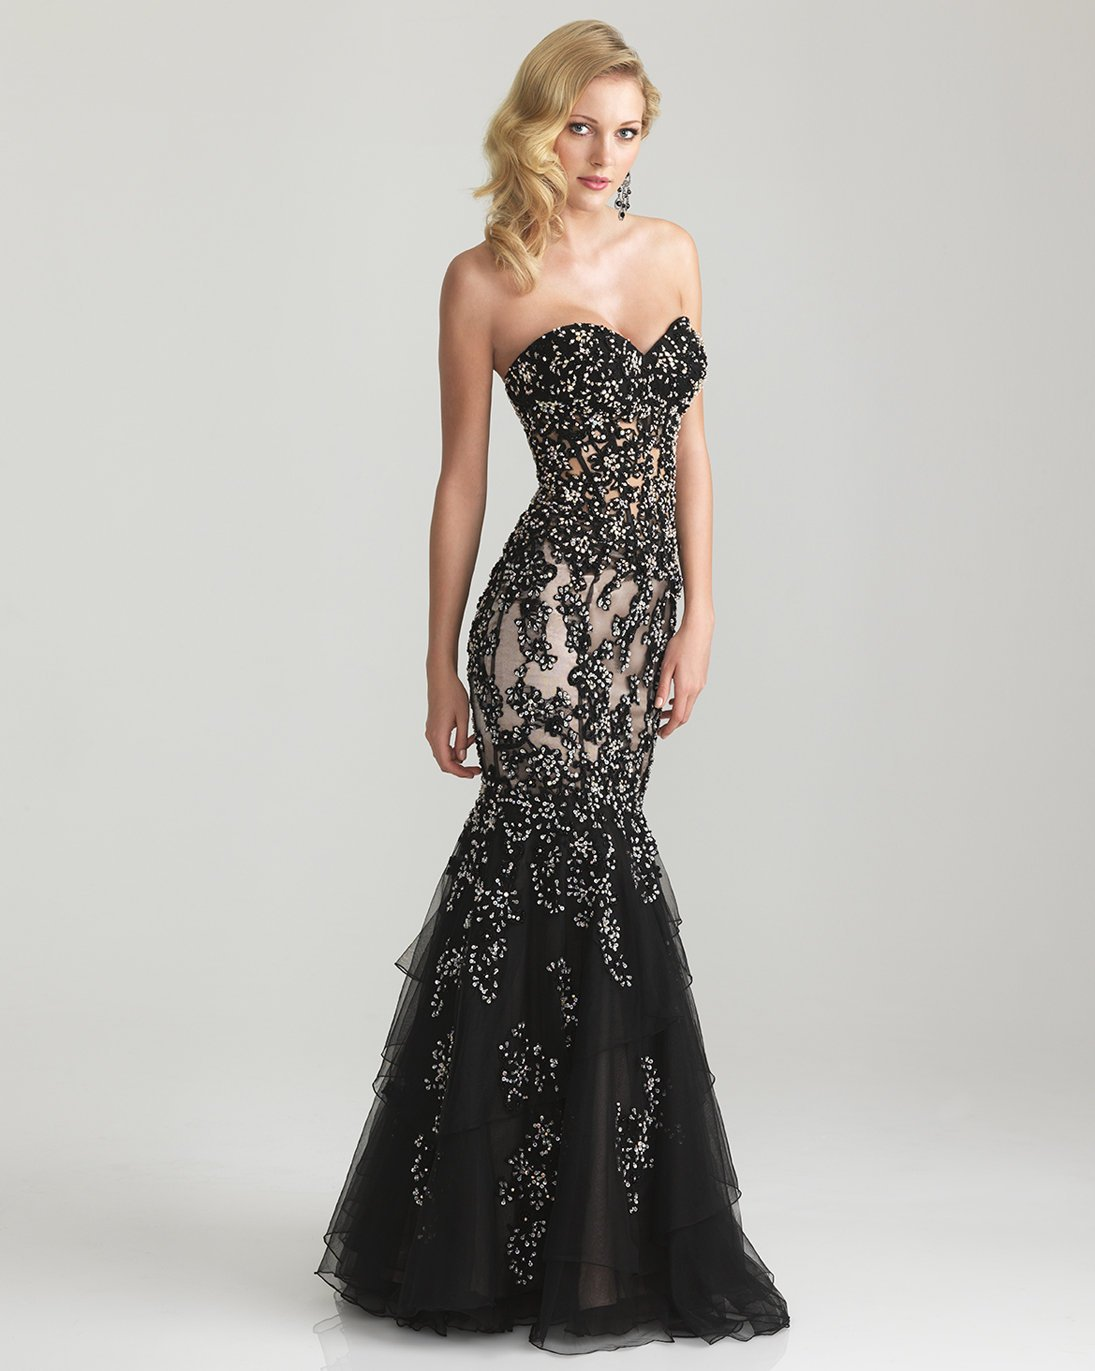 Black Beaded Lace Amp Tulle Strapless From Unique Vintage